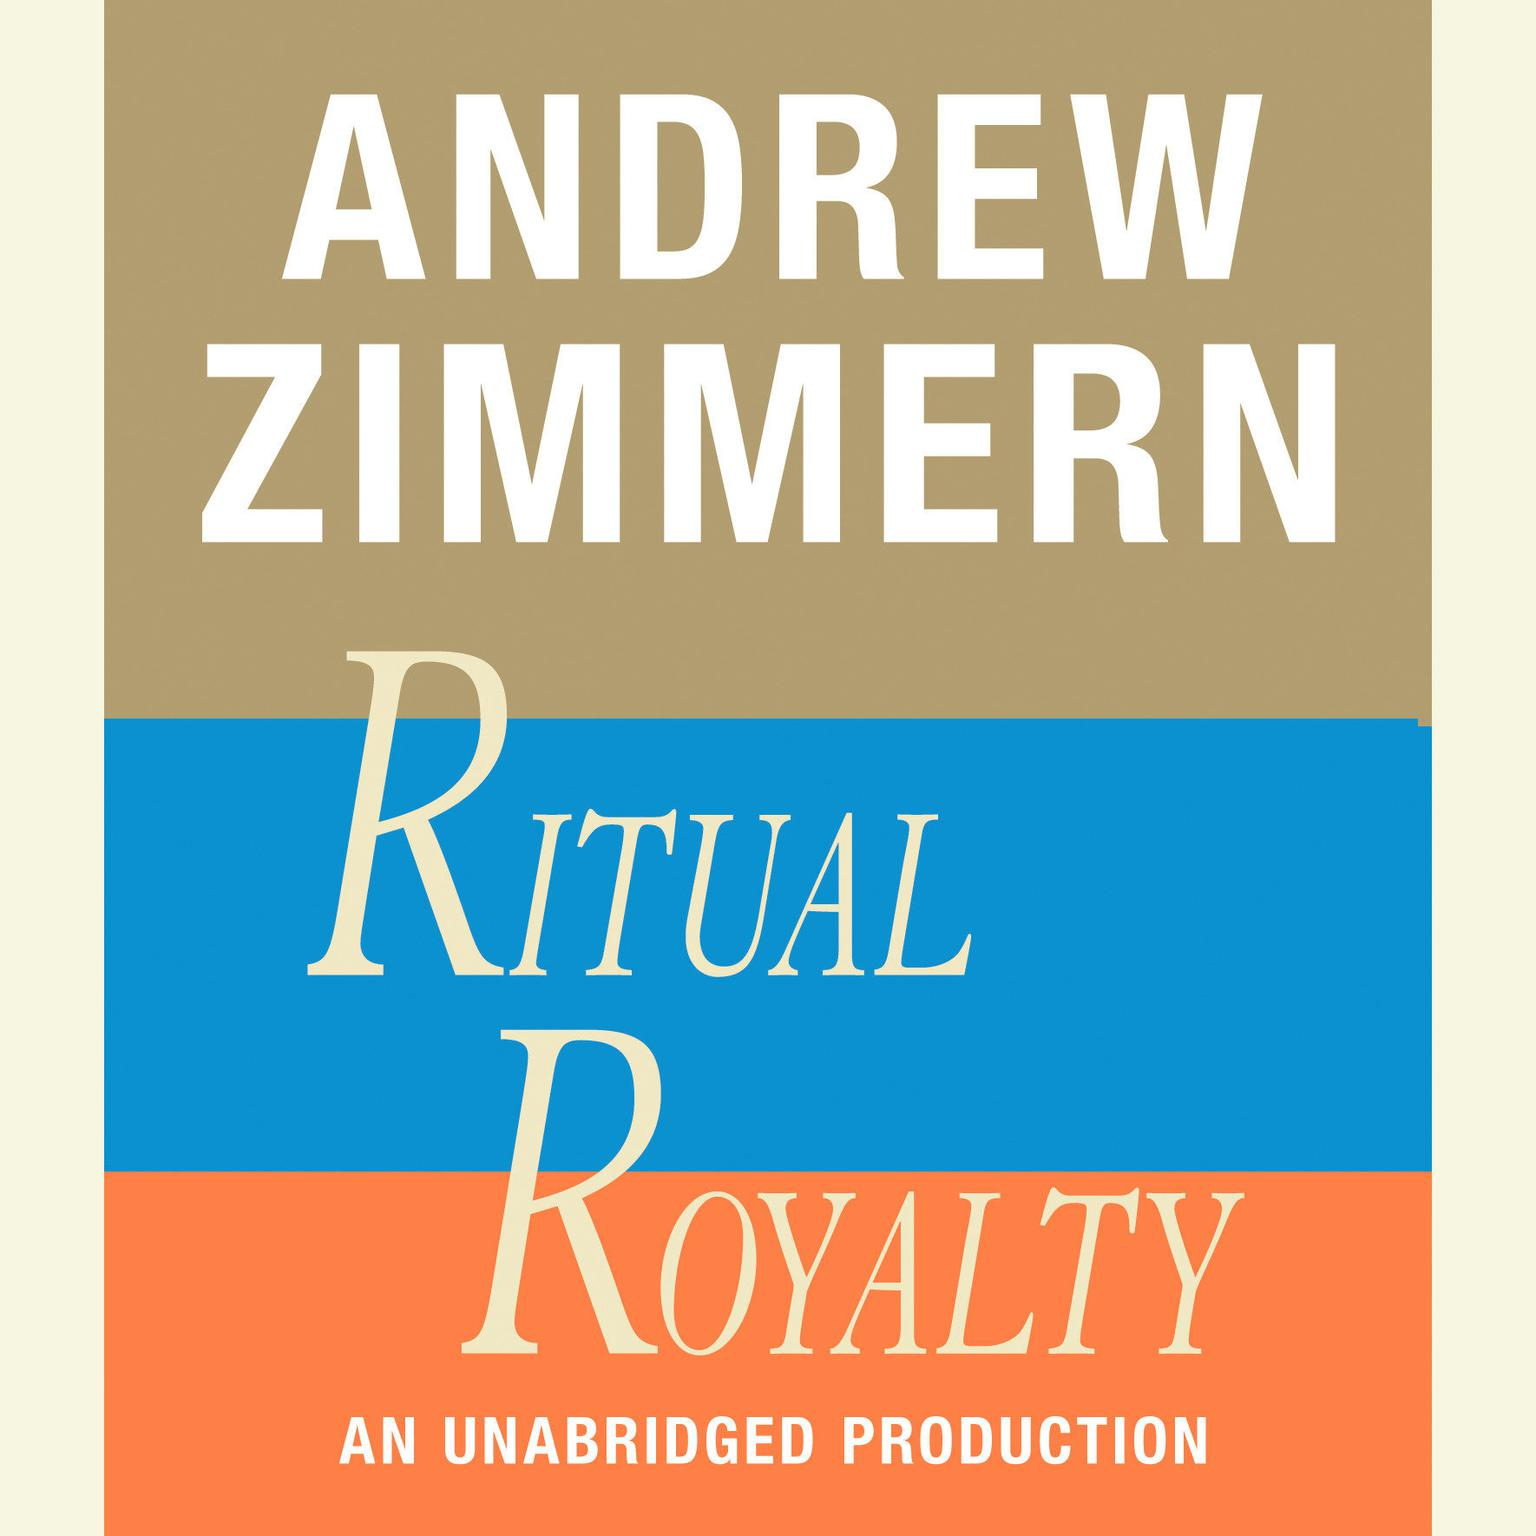 Printable Andrew Zimmern, Ritual Royalty: Chapter 19 from THE BIZARRE TRUTH Audiobook Cover Art